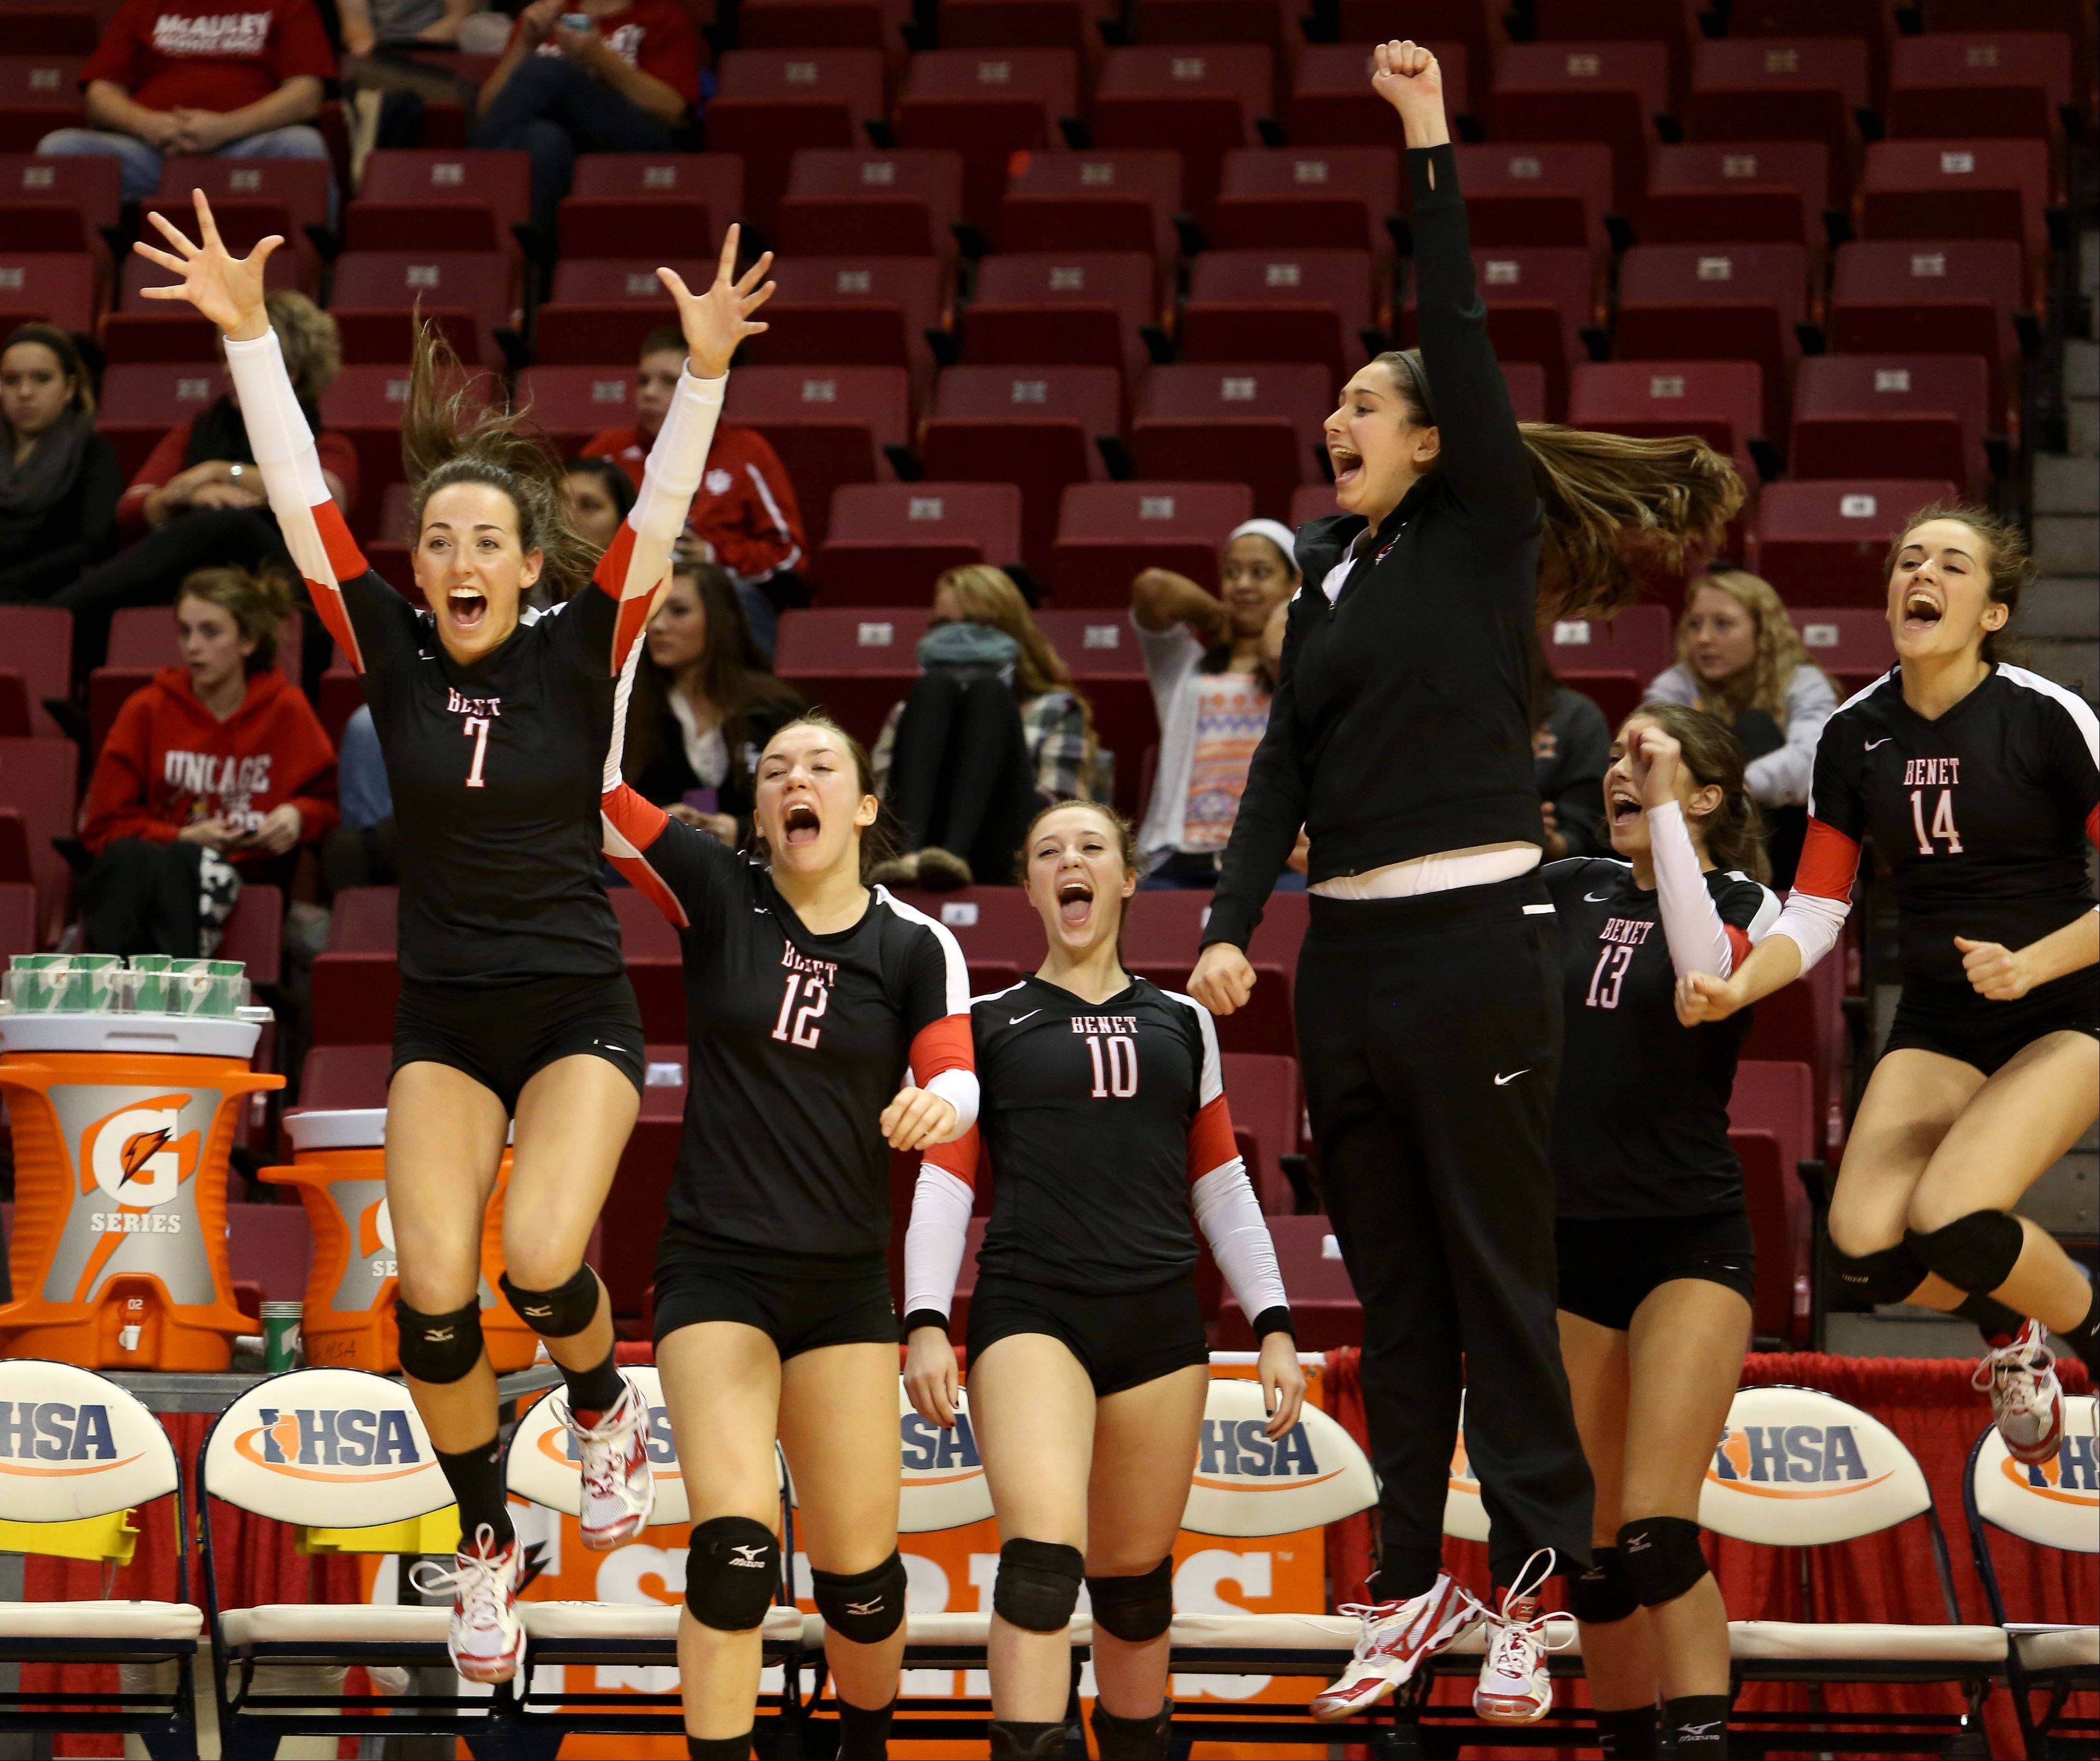 Benet players celebrate their victory over Crystal Lake South in Friday's Class 4A state girls volleyball semifinals in Normal.